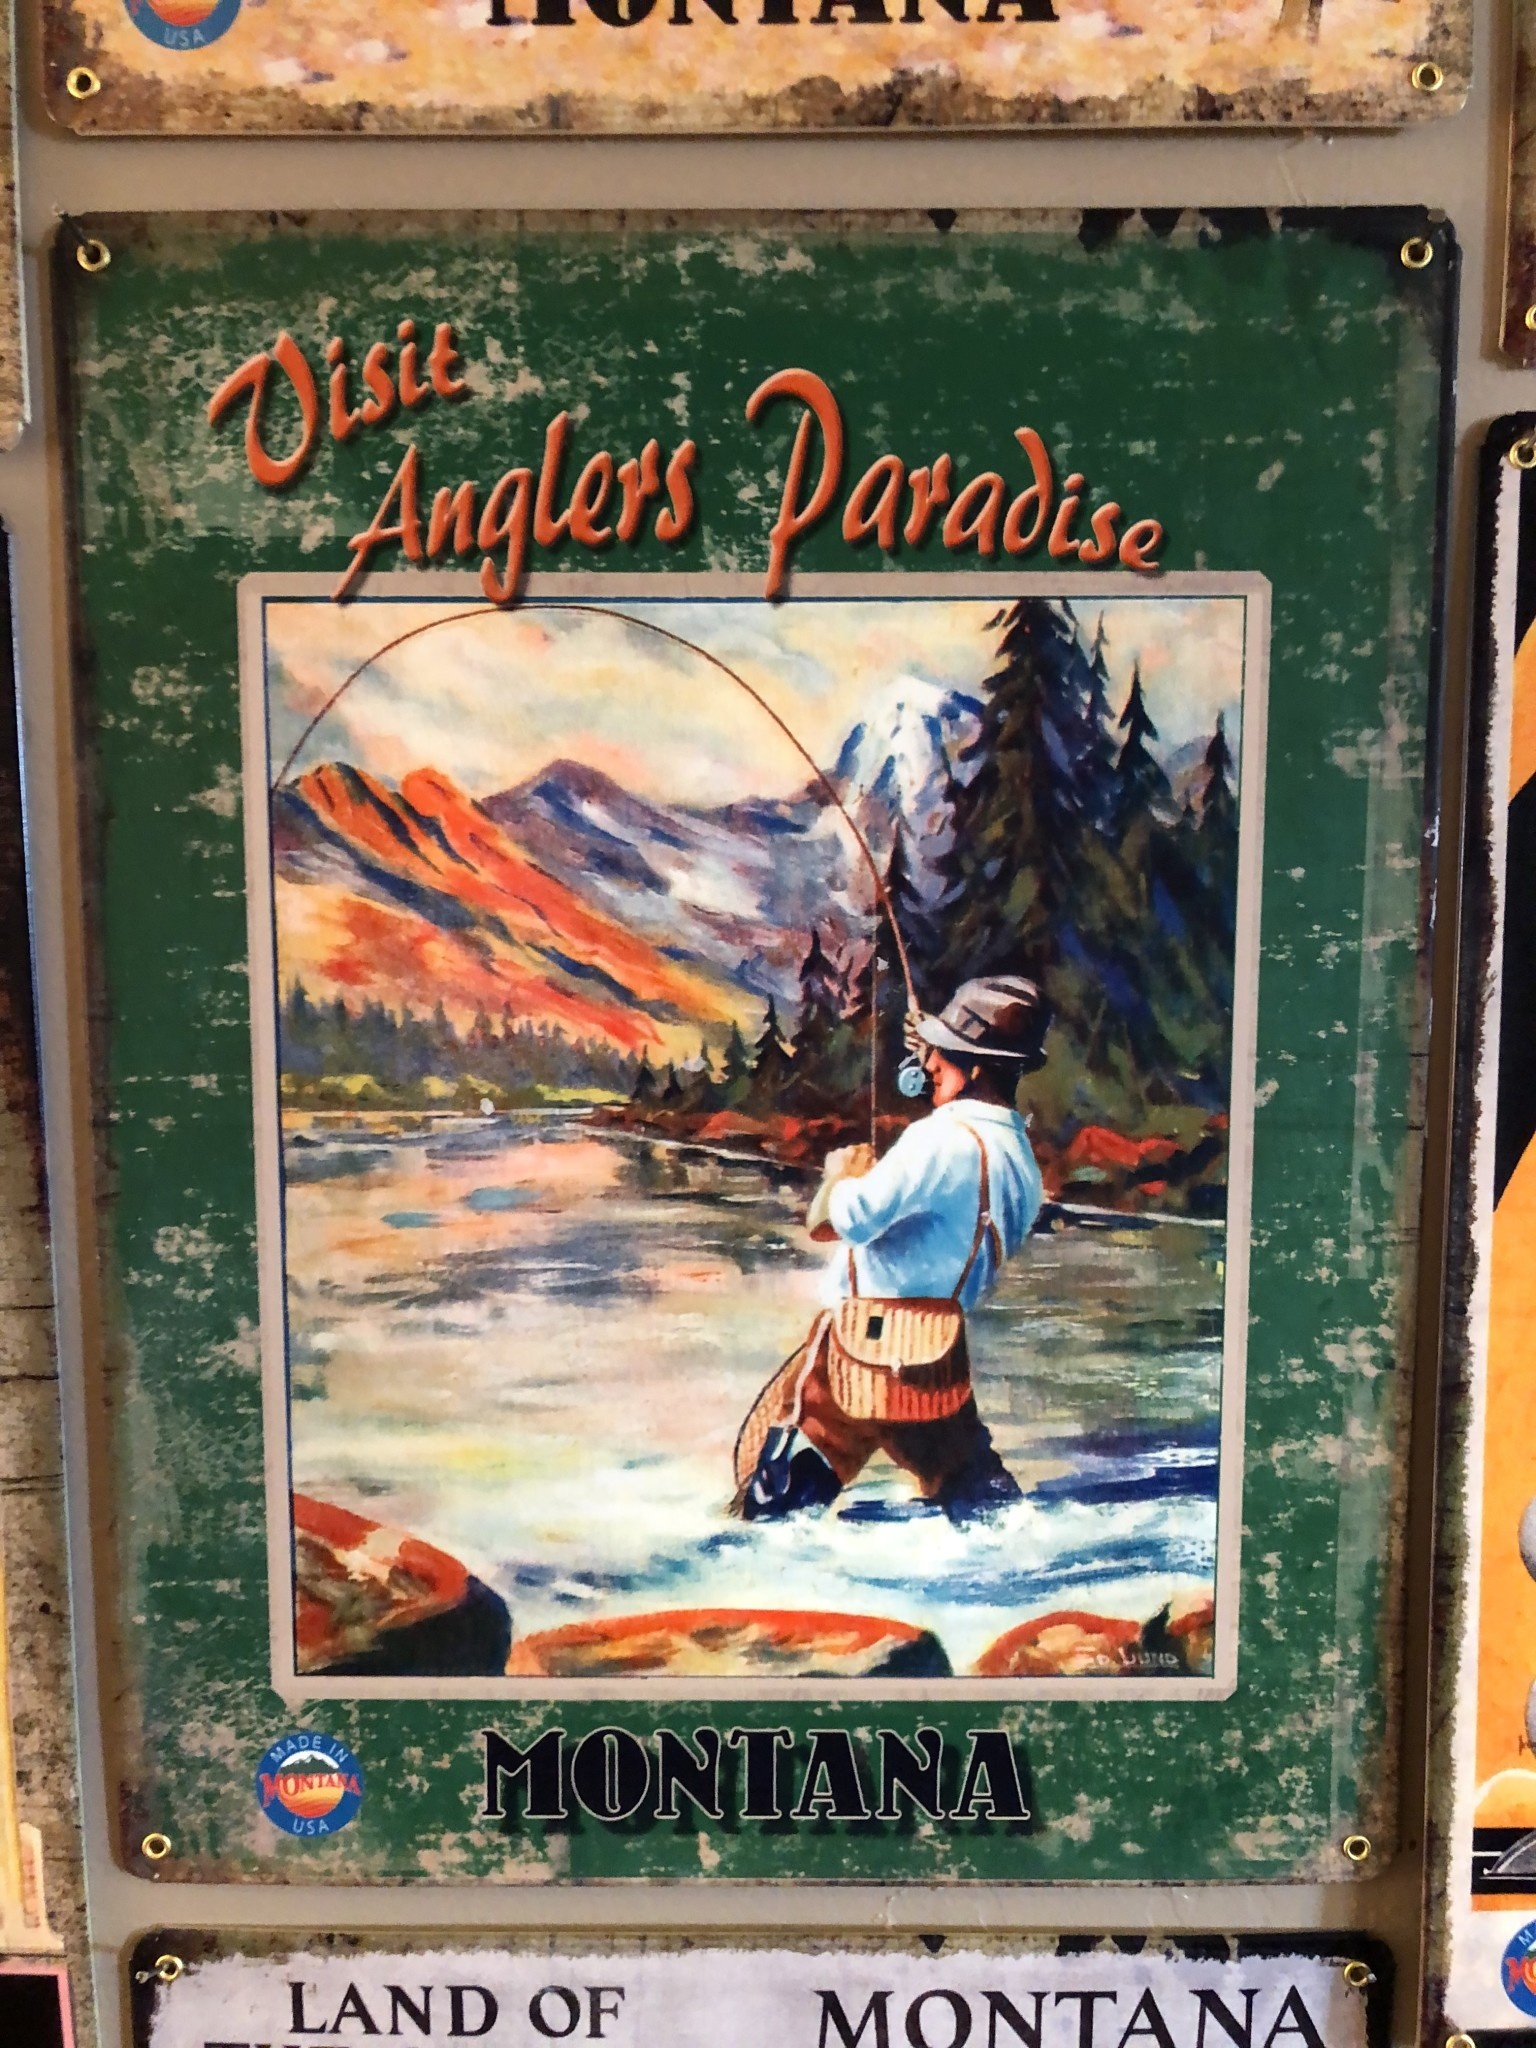 Classic Outdoor Magazines #3  Angler Paradise 12x15 Metal Sign